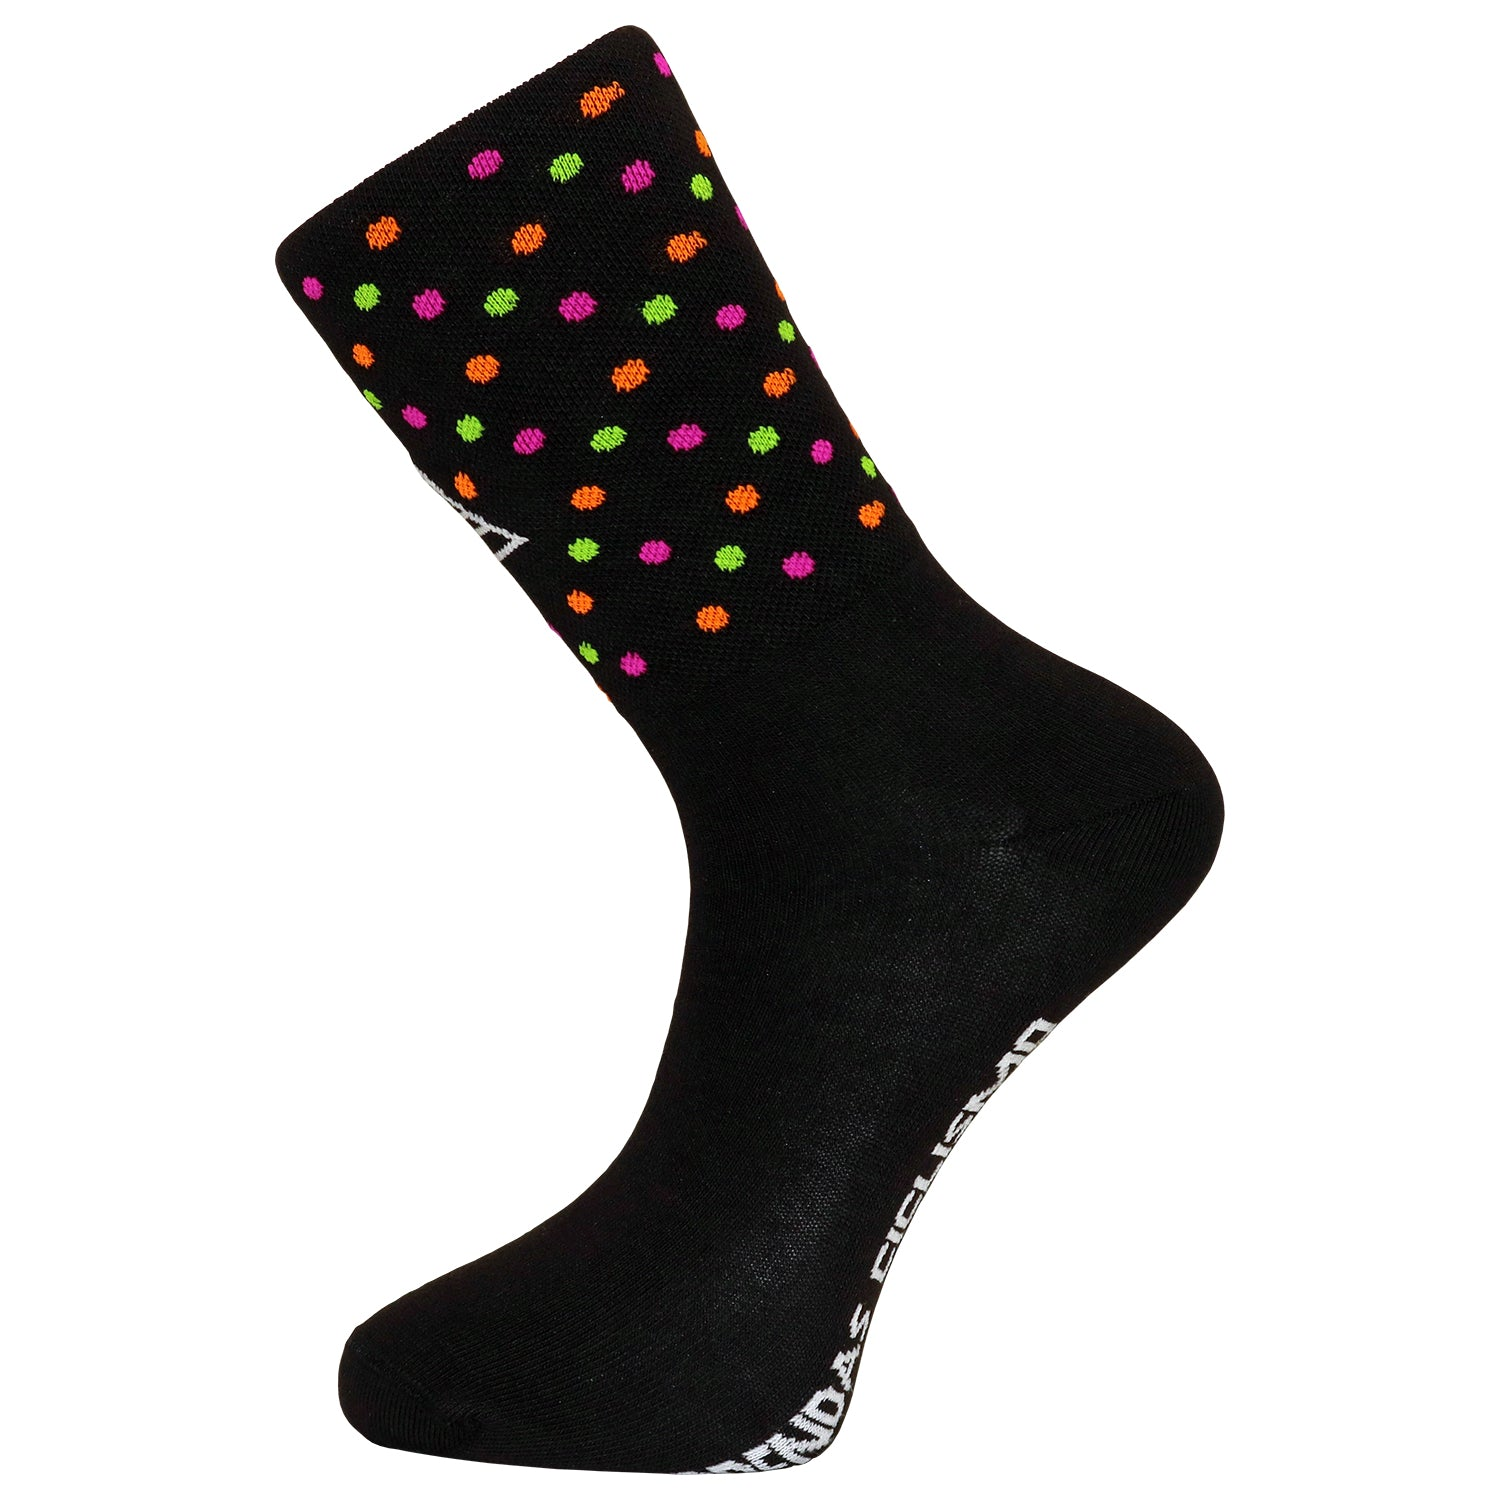 Prendas Ciclismo DOTS Tall Coolmax Socks